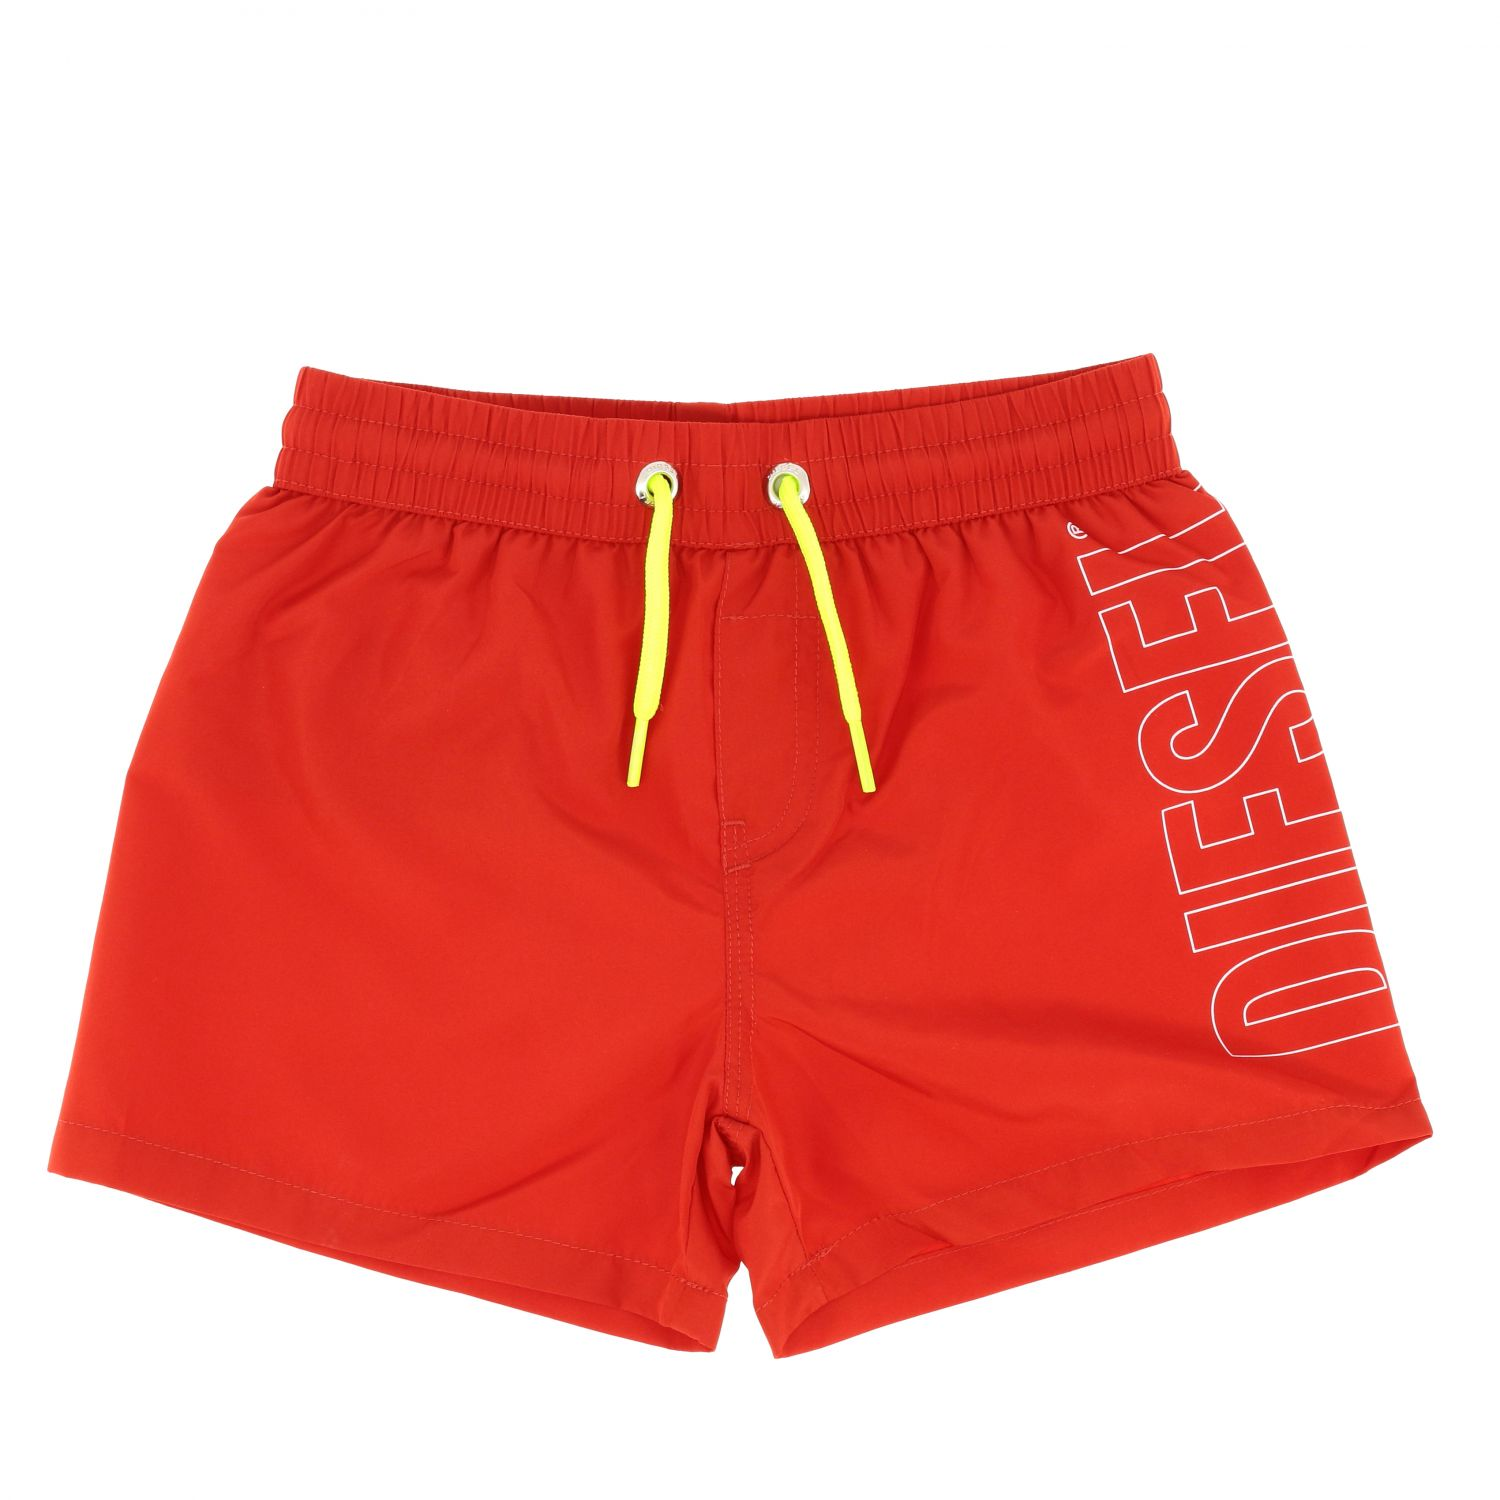 Diesel boxer swimsuit with drawstring and logo red 1